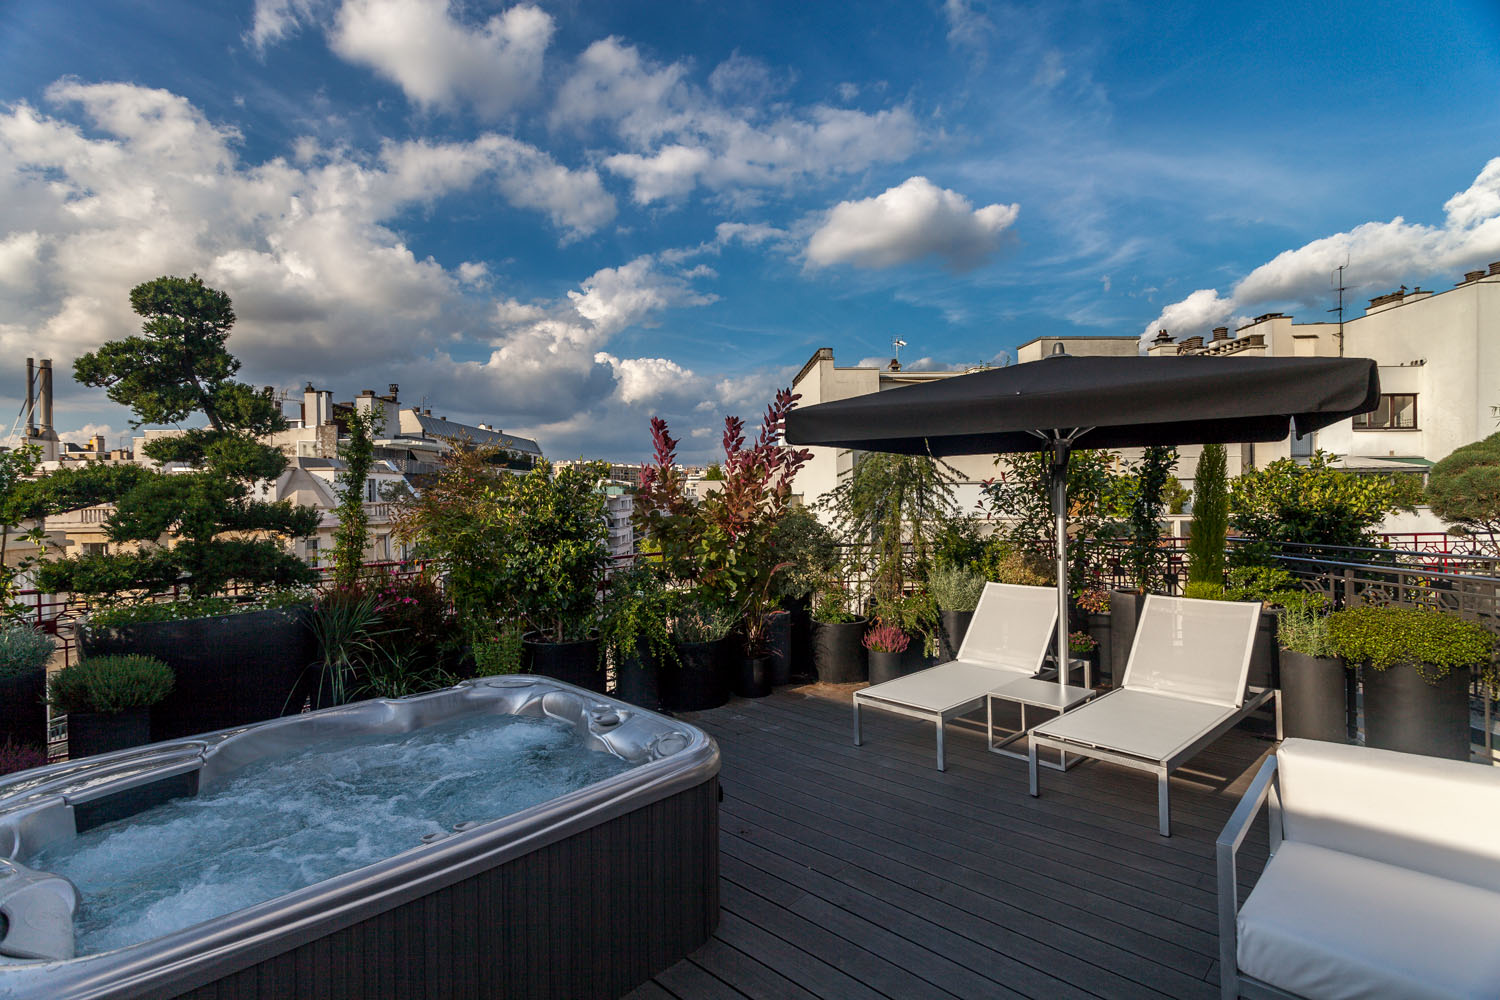 Terrasse Hotel Paris Hotel Félicien Paris By Elegancia Hotels Hotel Paris 75016